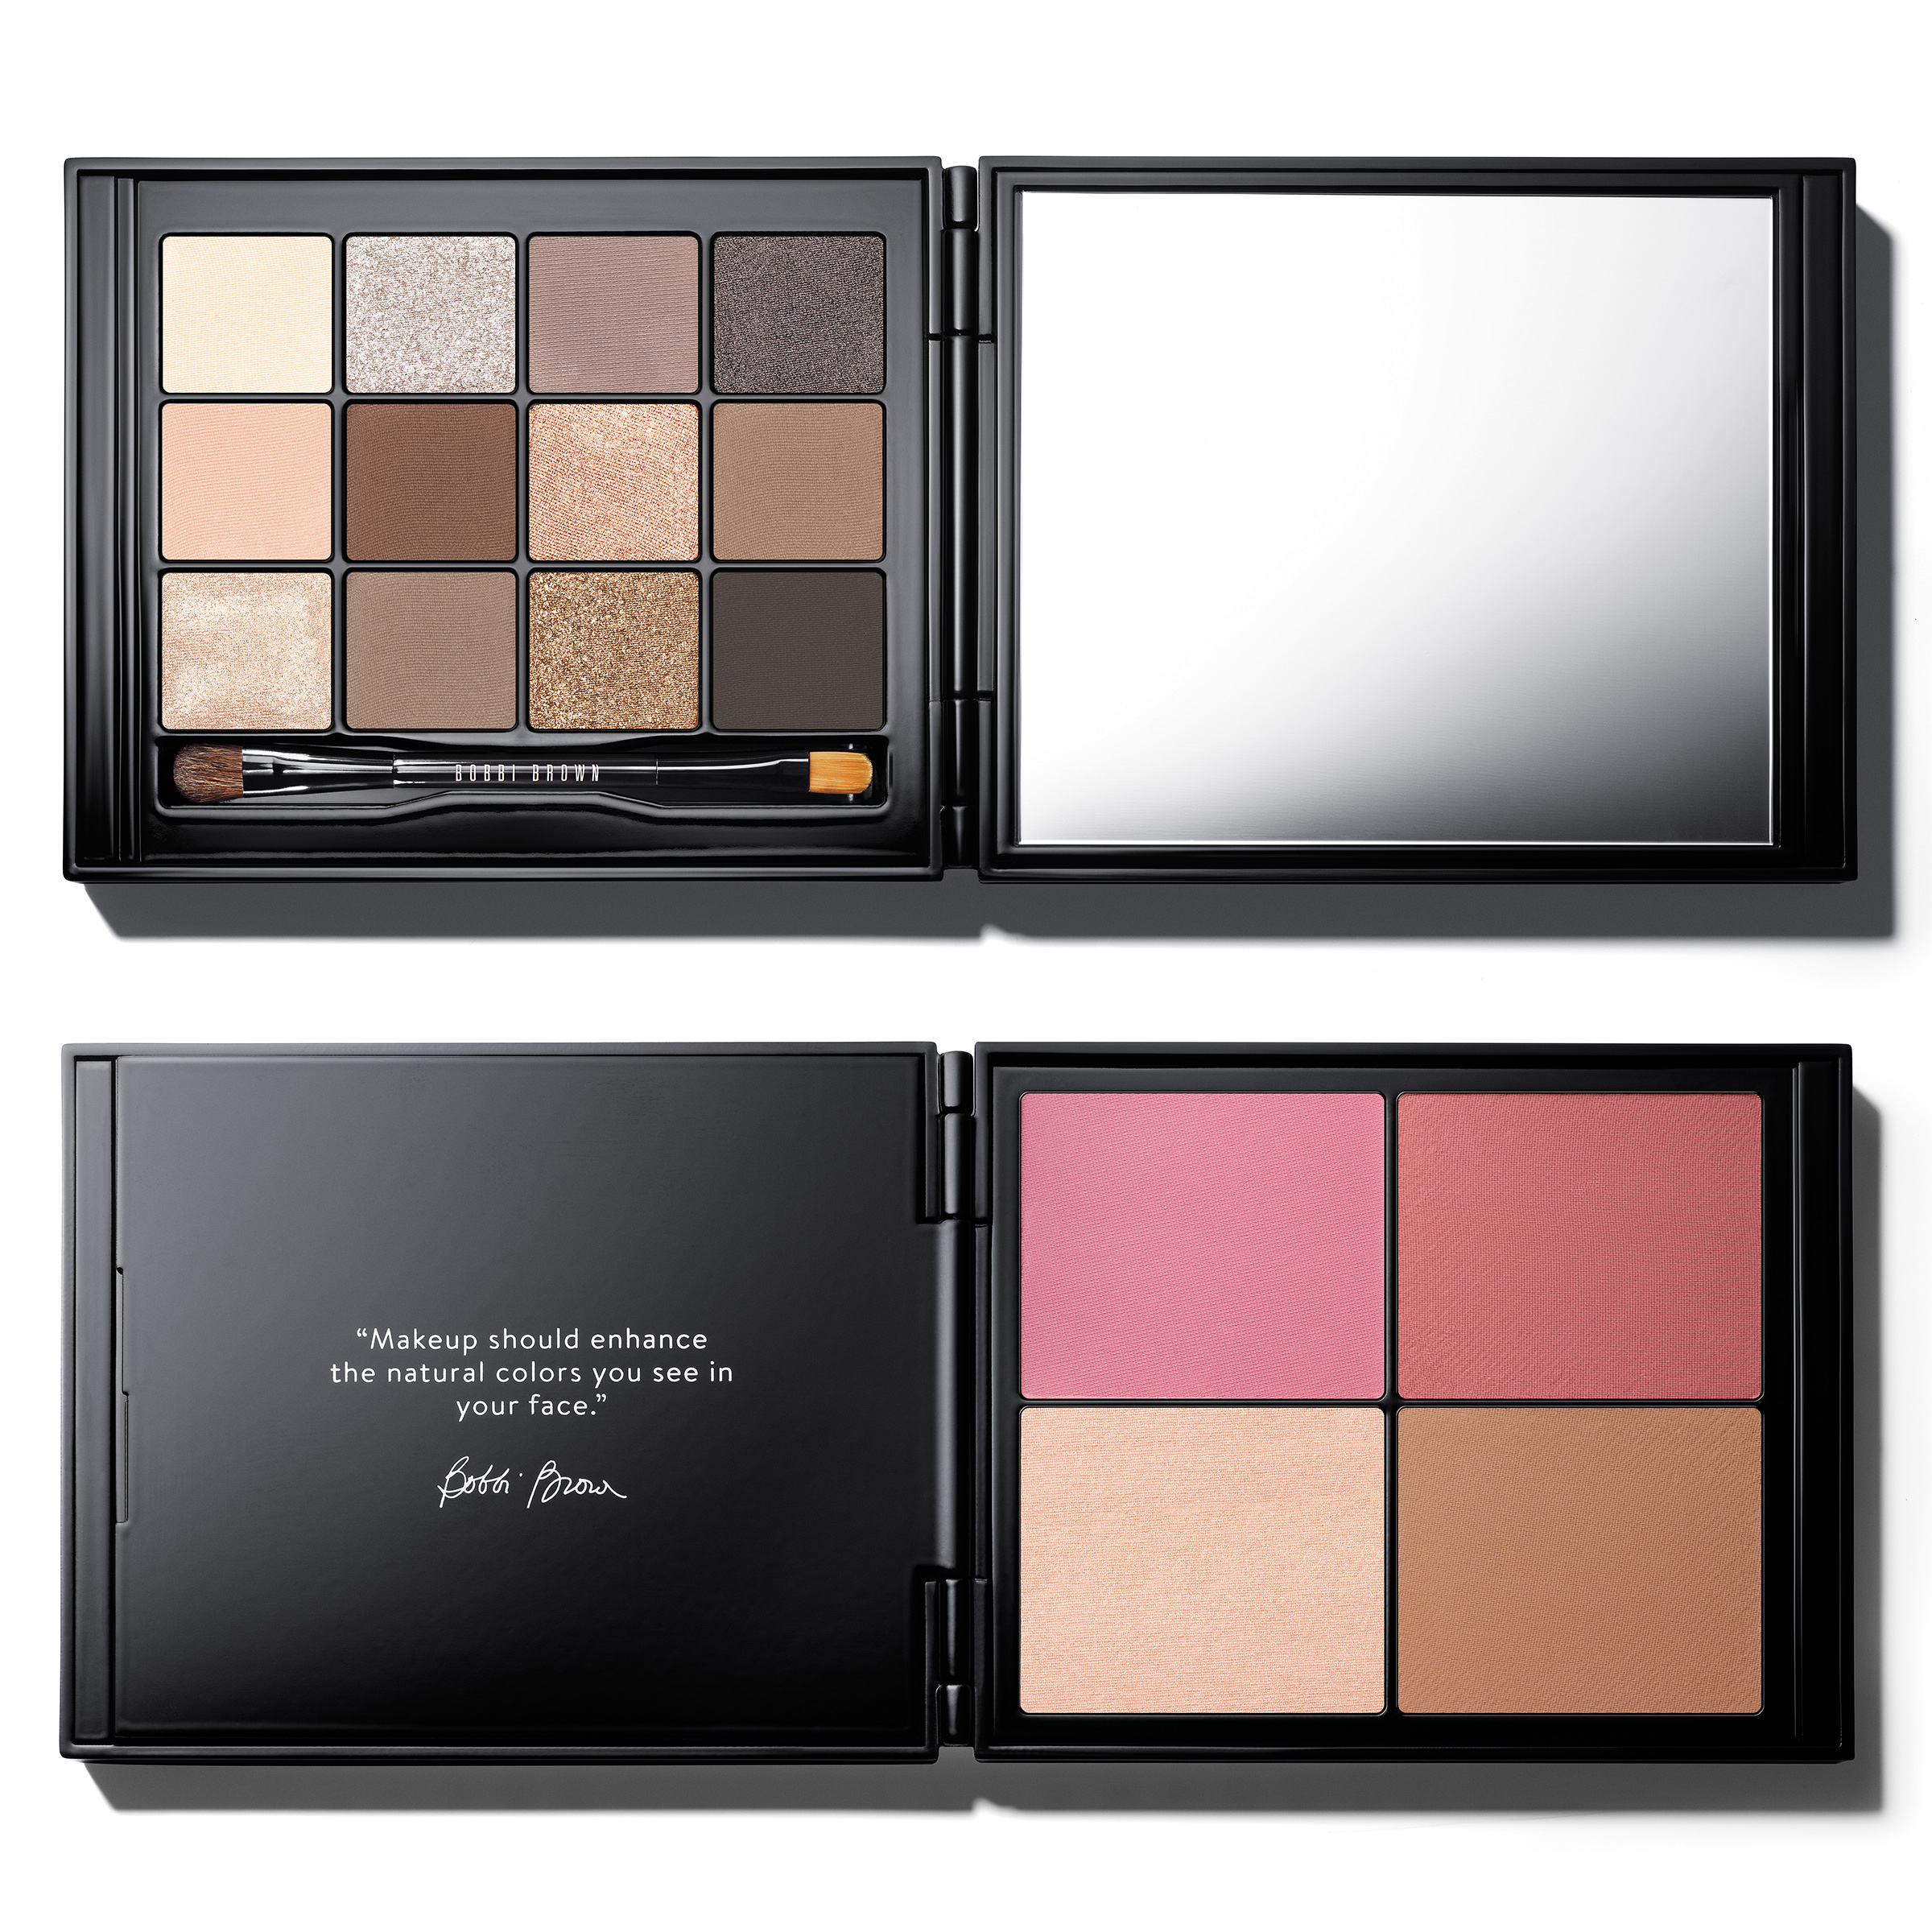 BobbiBrown Eye Cheek Palette, $98 (value $365). (Image: Nordstrom)